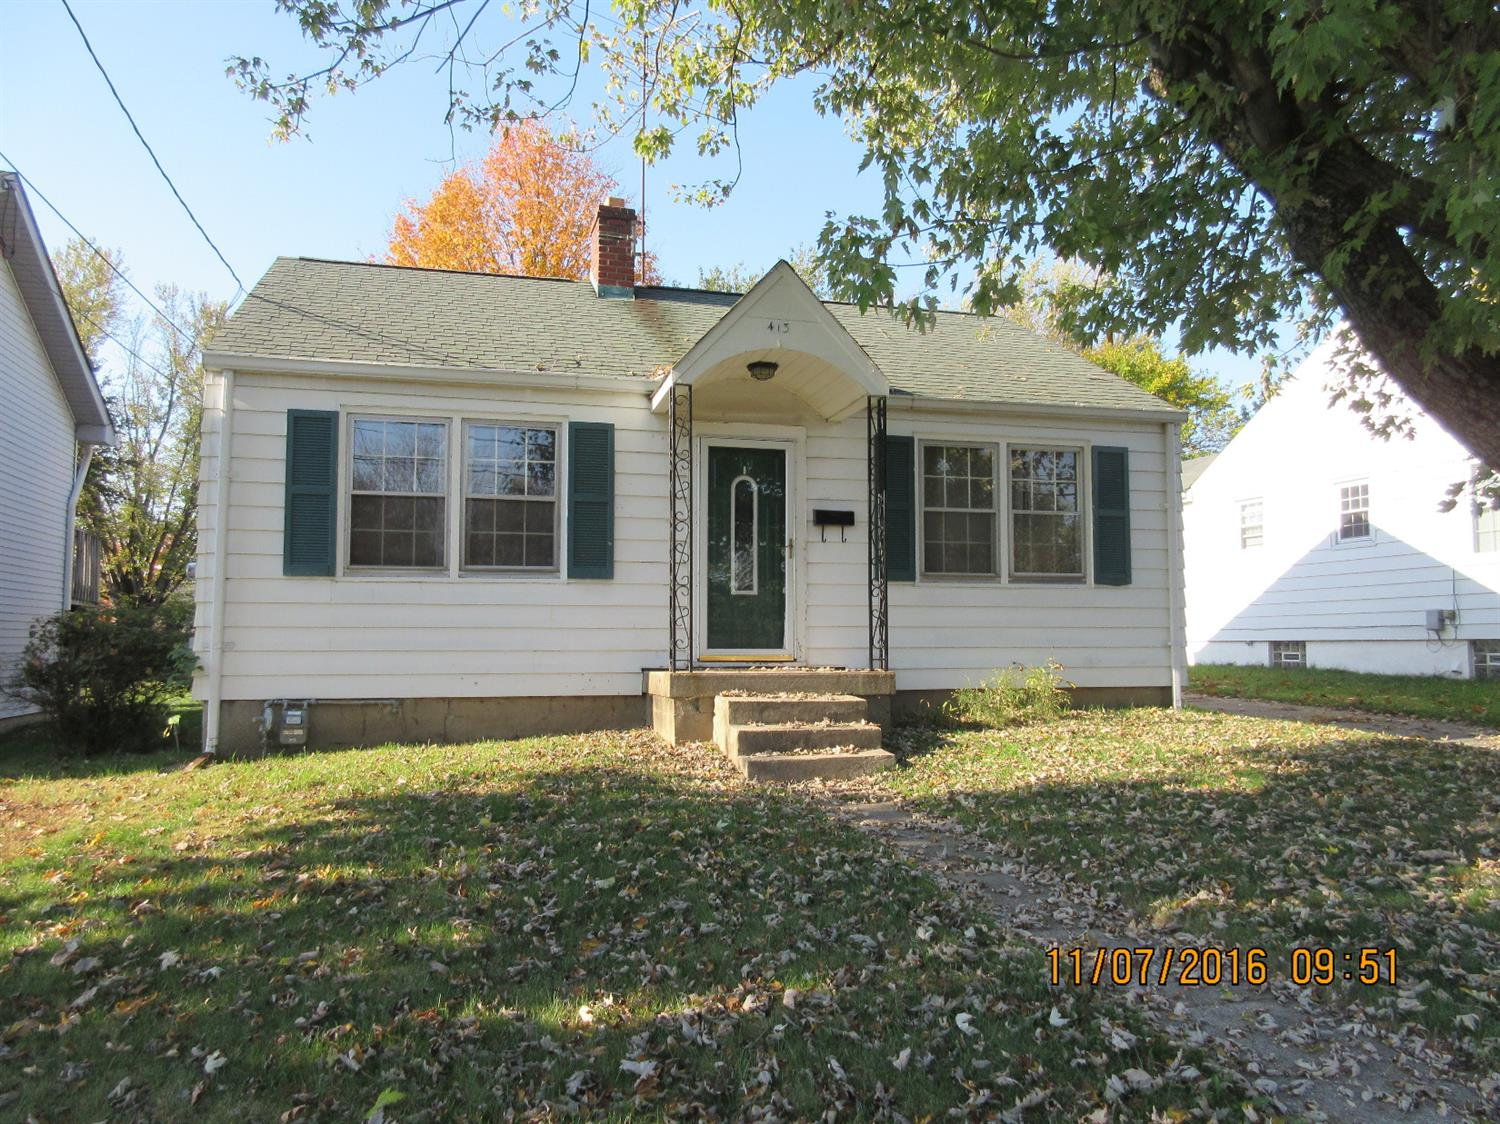 Photo 1 for 413 Hallam Ave Erlanger, KY 41018